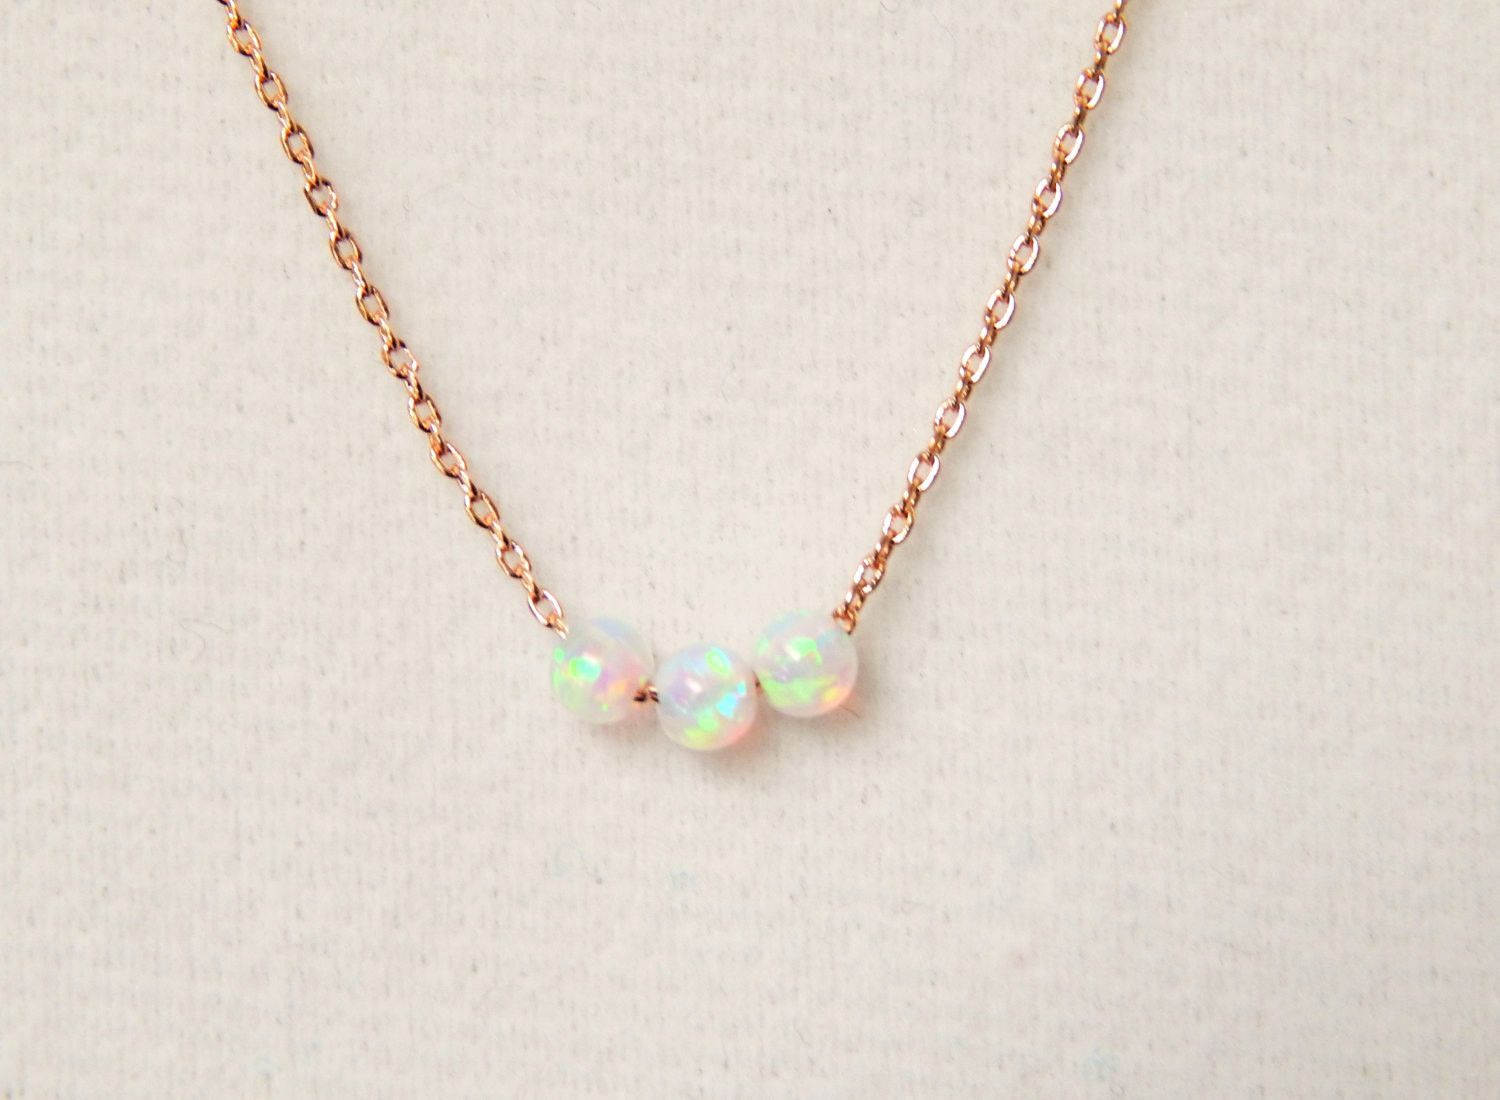 rose absolutely this by gold necklace pin with opal pendant white and in love kendra scott